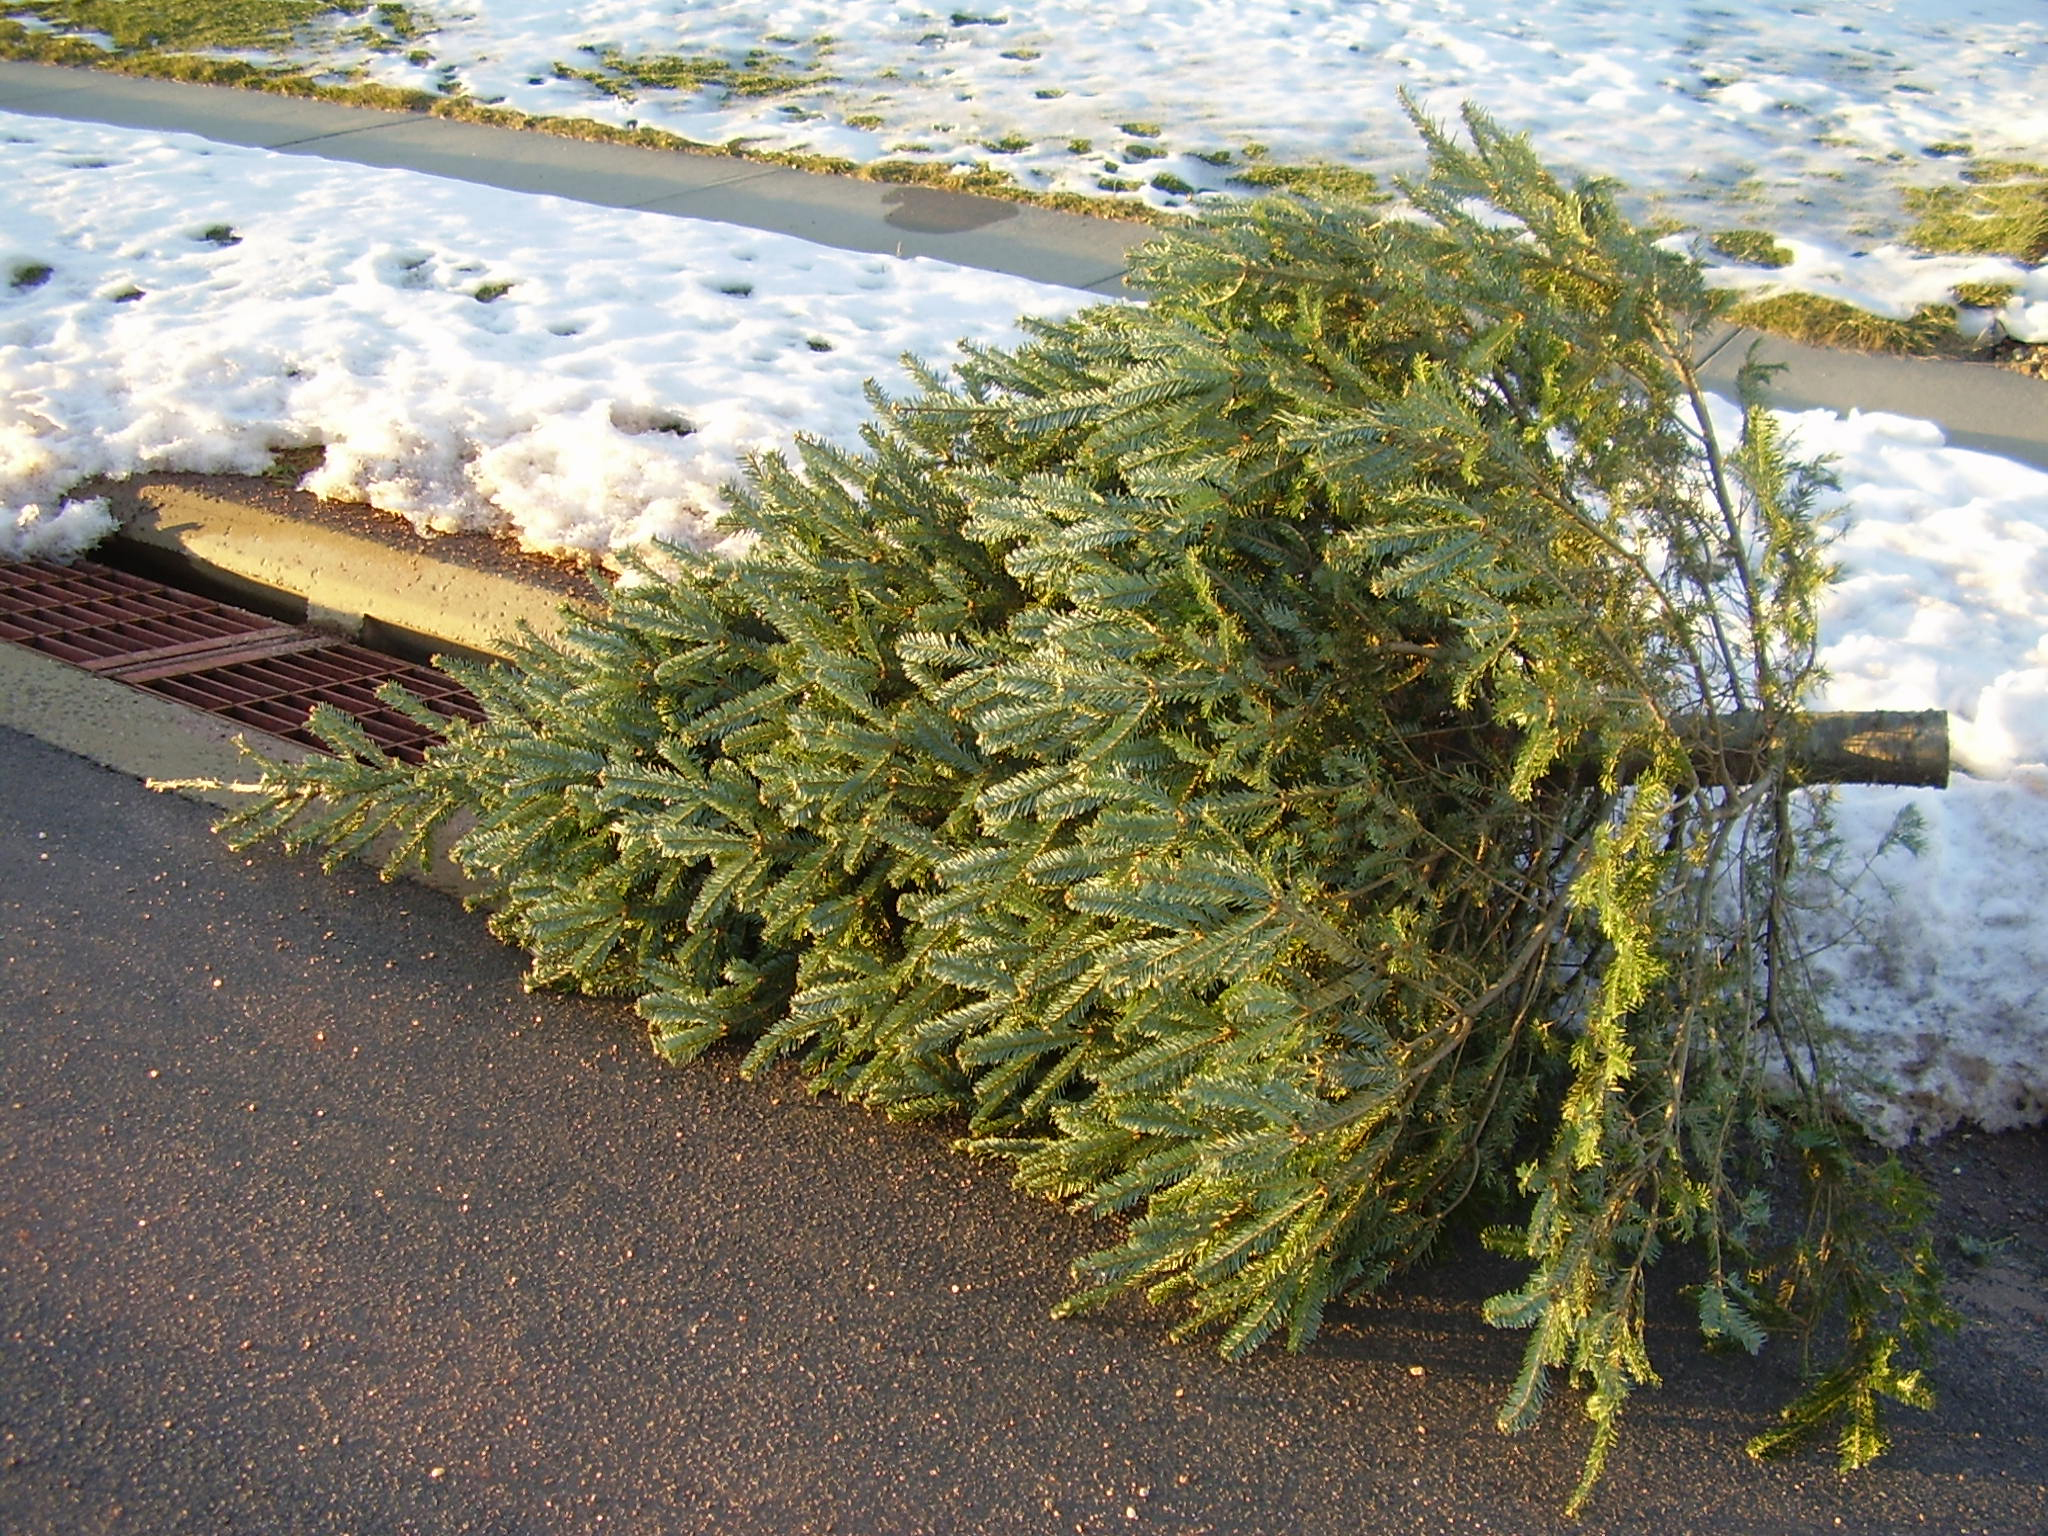 What day to take christmas decor down - Discarded Christmas Tree Some People Take Down